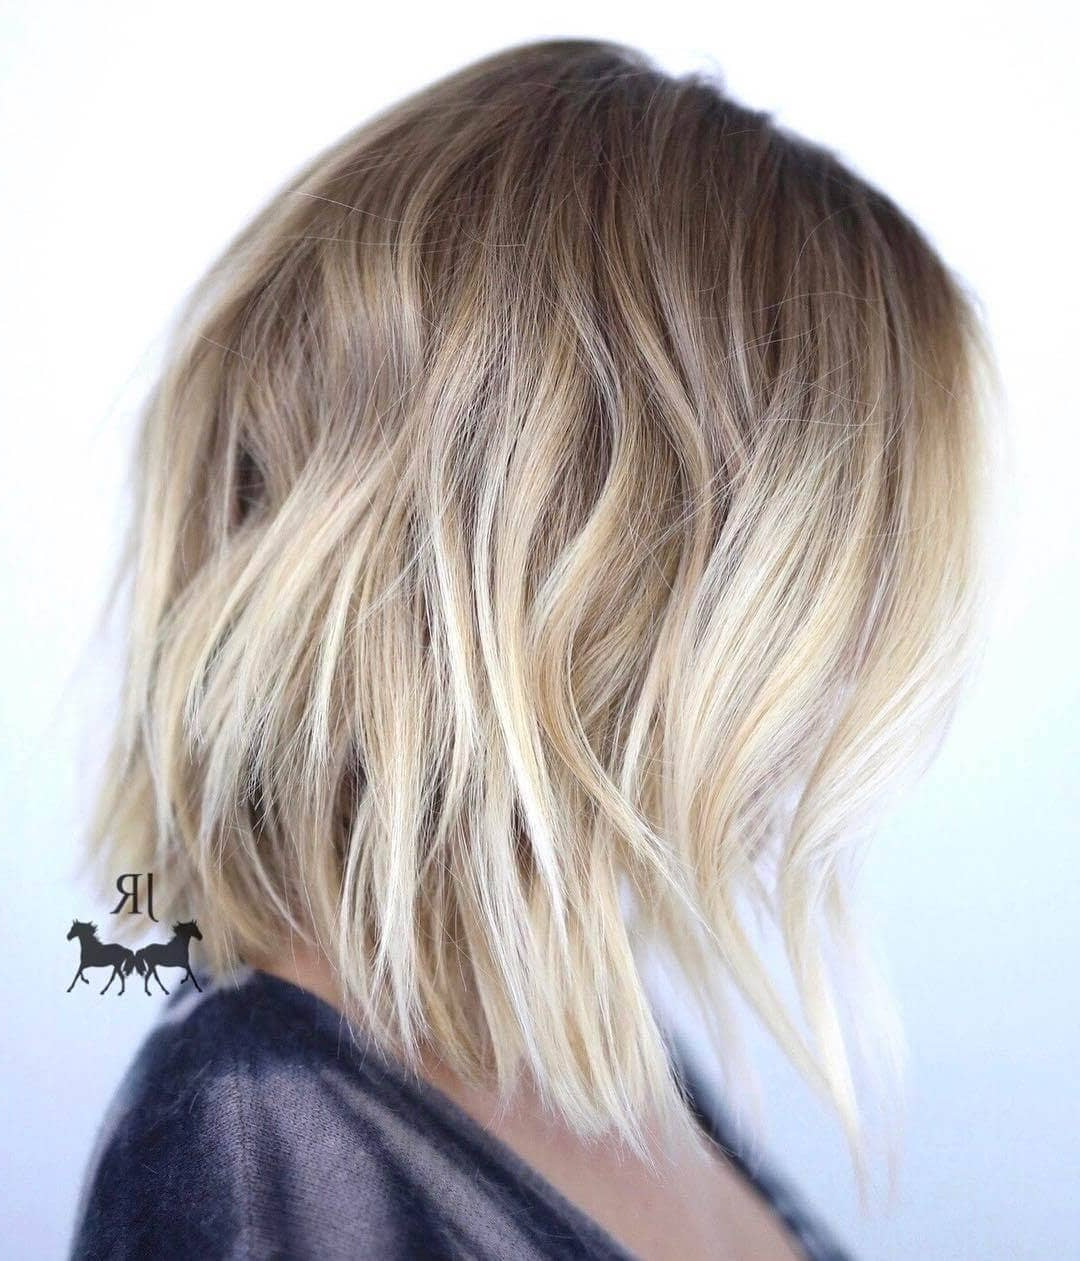 50 Fresh Short Blonde Hair Ideas To Update Your Style In 2018 For White Blonde Curly Layered Bob Hairstyles (View 6 of 20)